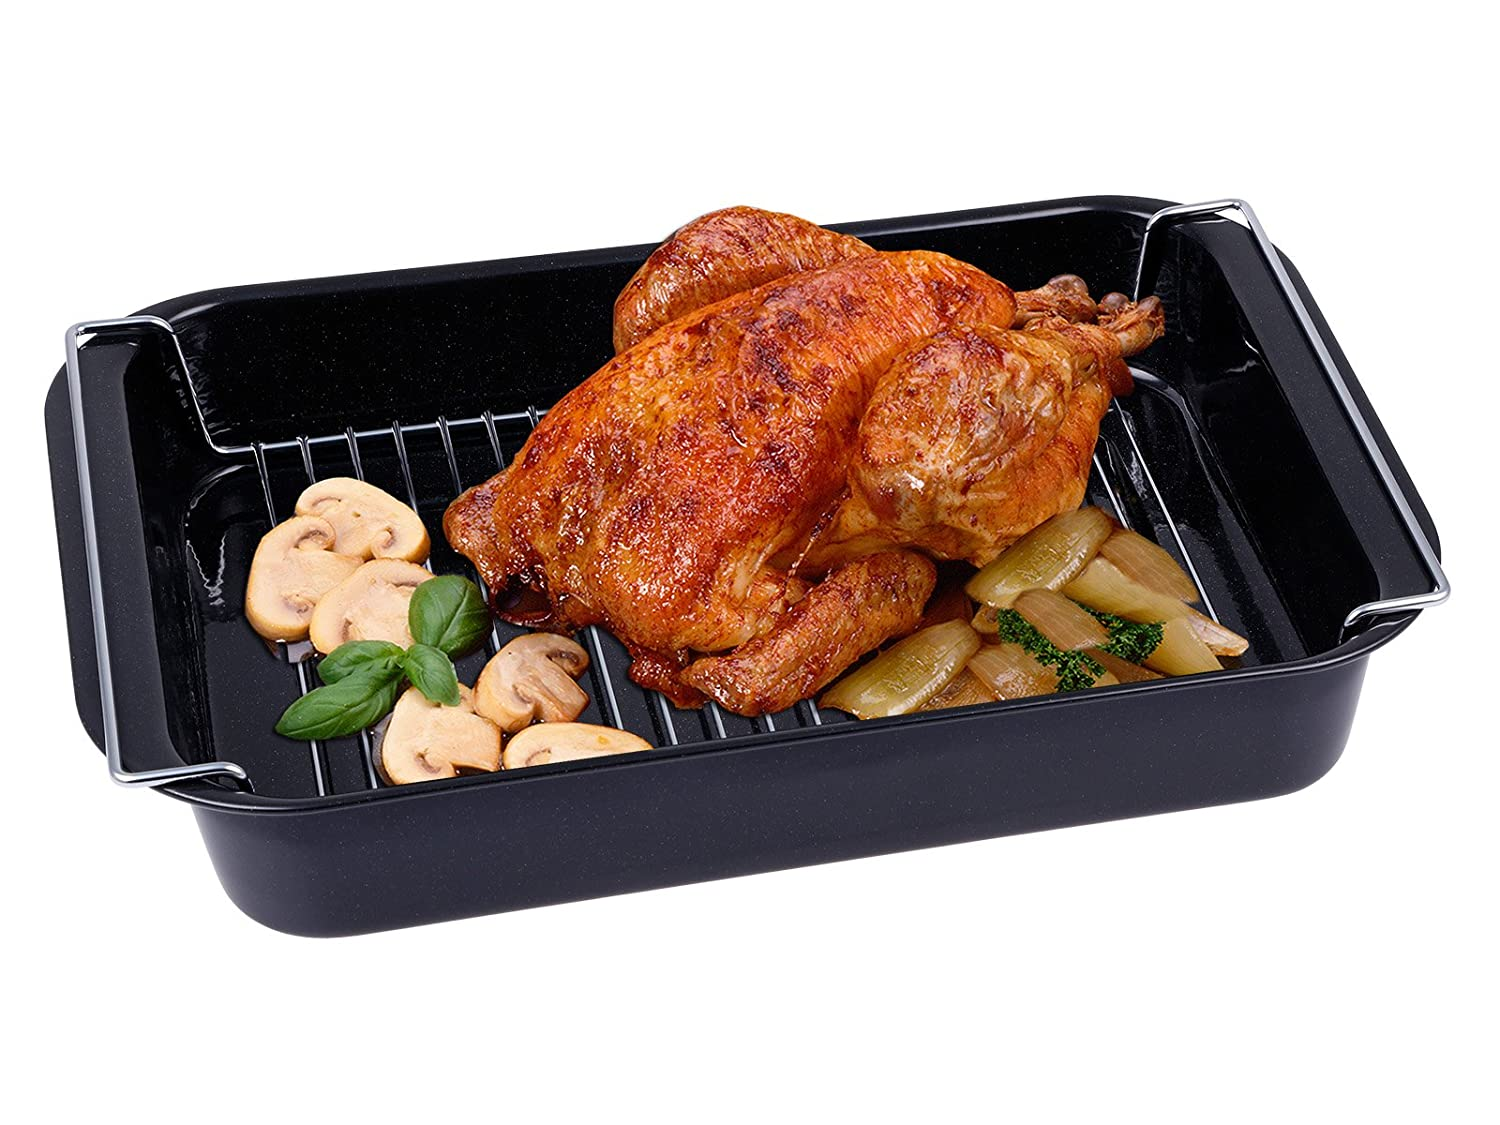 chg 9911-05 Chicken Roasting Tray with Grill Insert